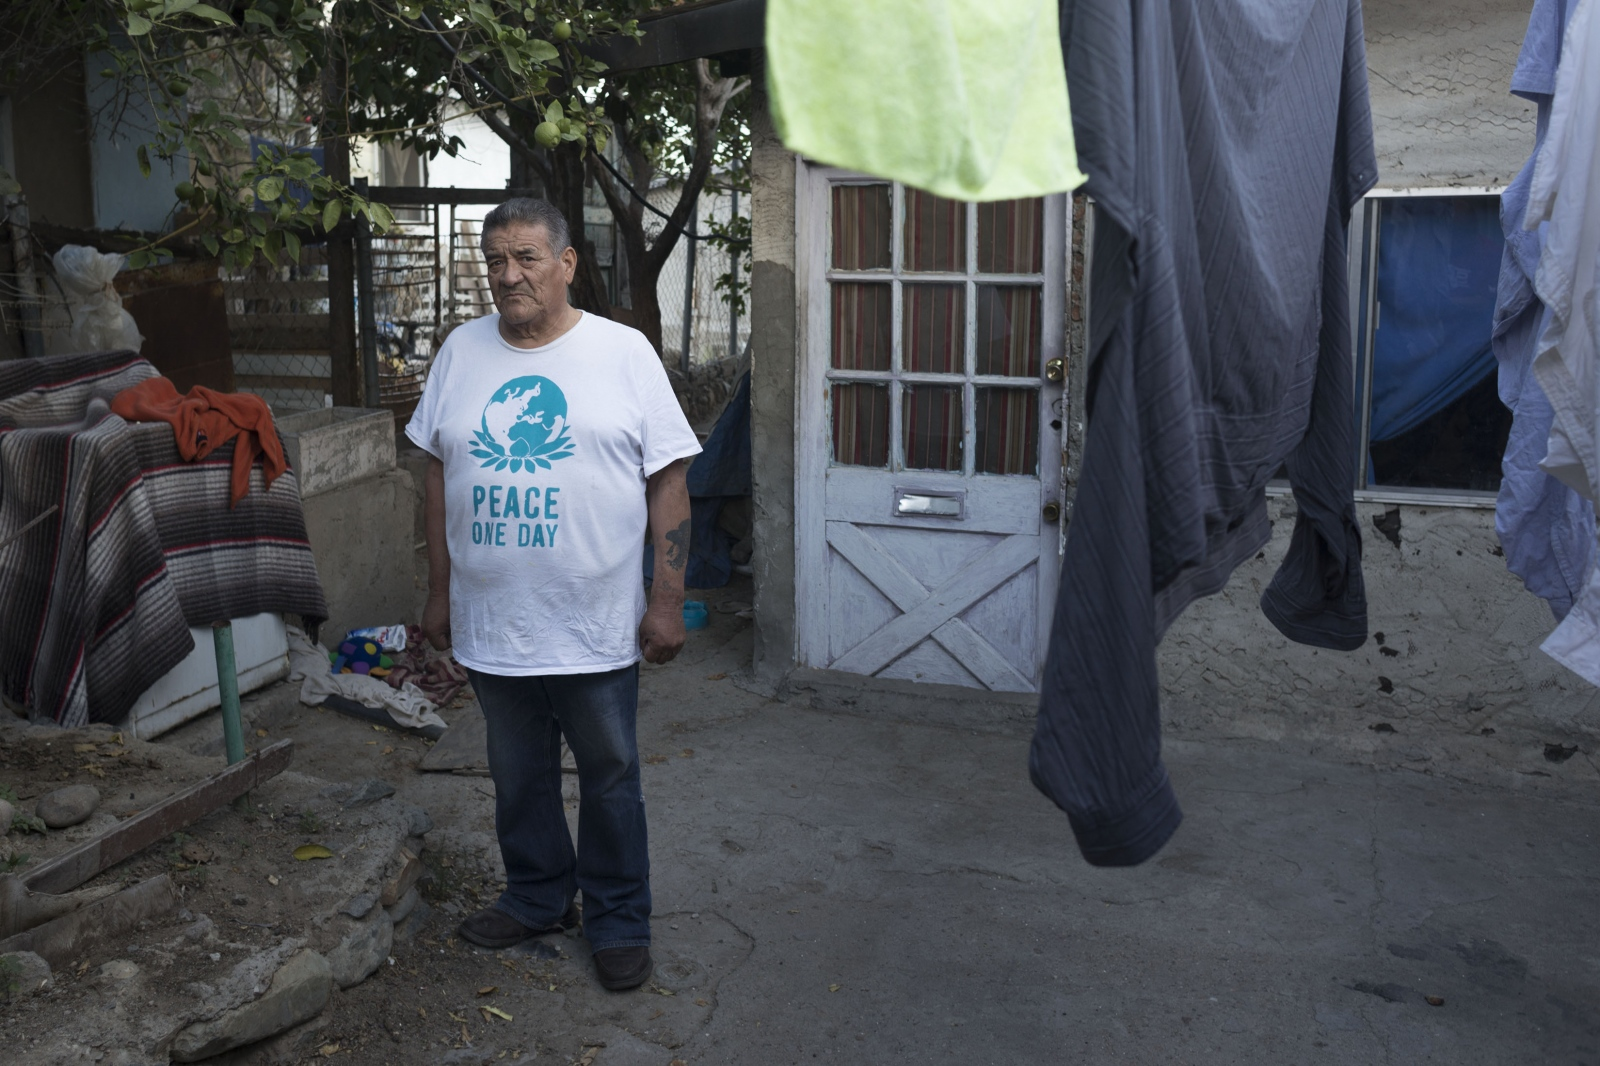 Deported Army veteran Andres De Leon, 71, poses for a portrait outside his dilapidated home in Tijuana. De Leon found Hector Barajas and the Deported Veterans Support House from reading a newspaper article.